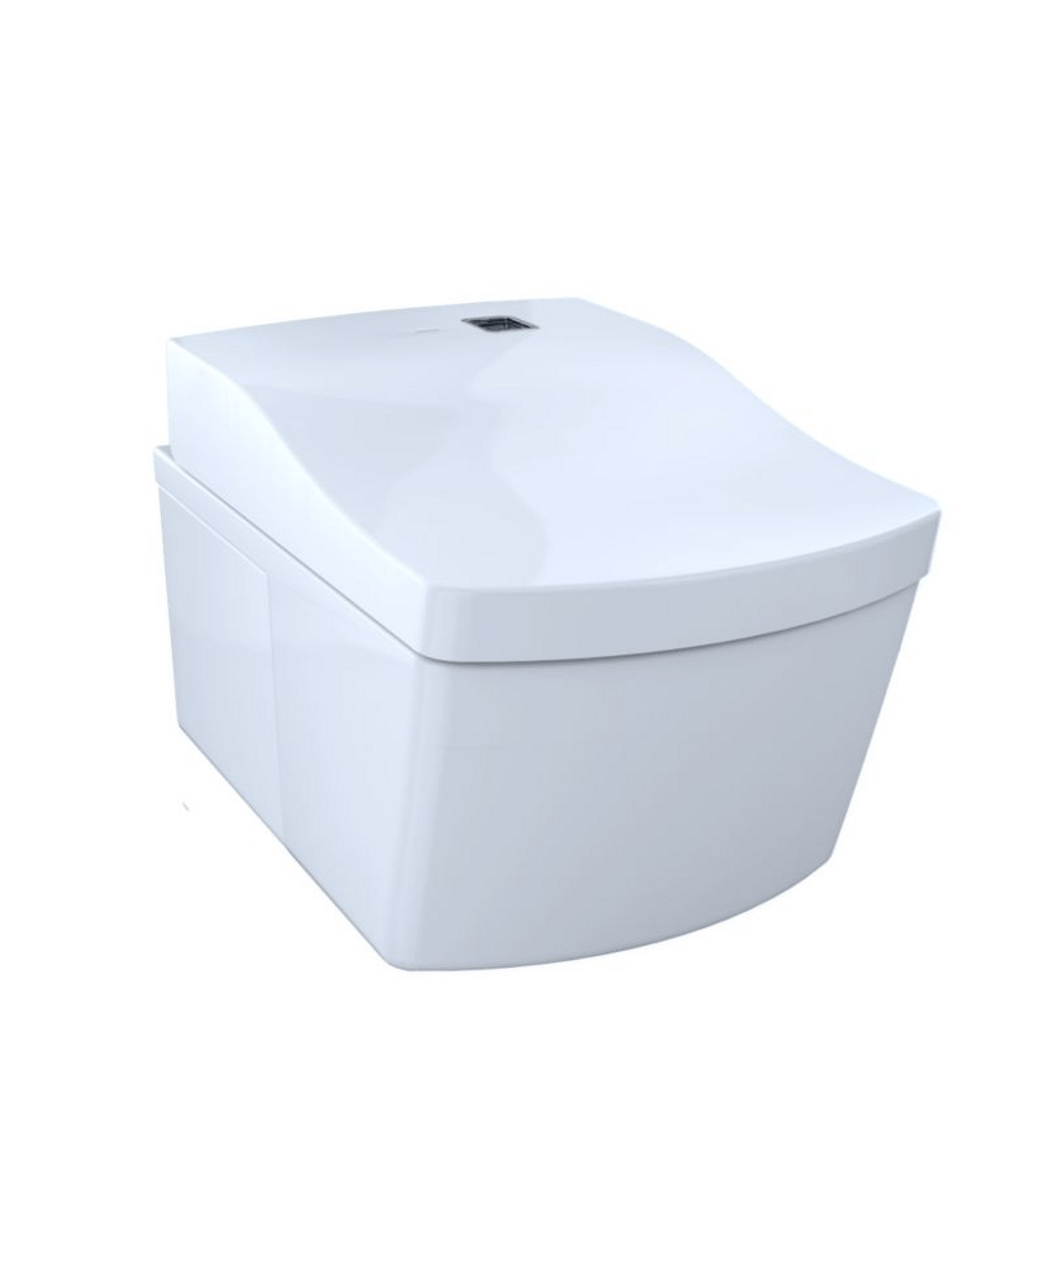 Toilette Toto Toto Neorest Ew Wall Hung Dual Flush One Piece Toilet And Bidet